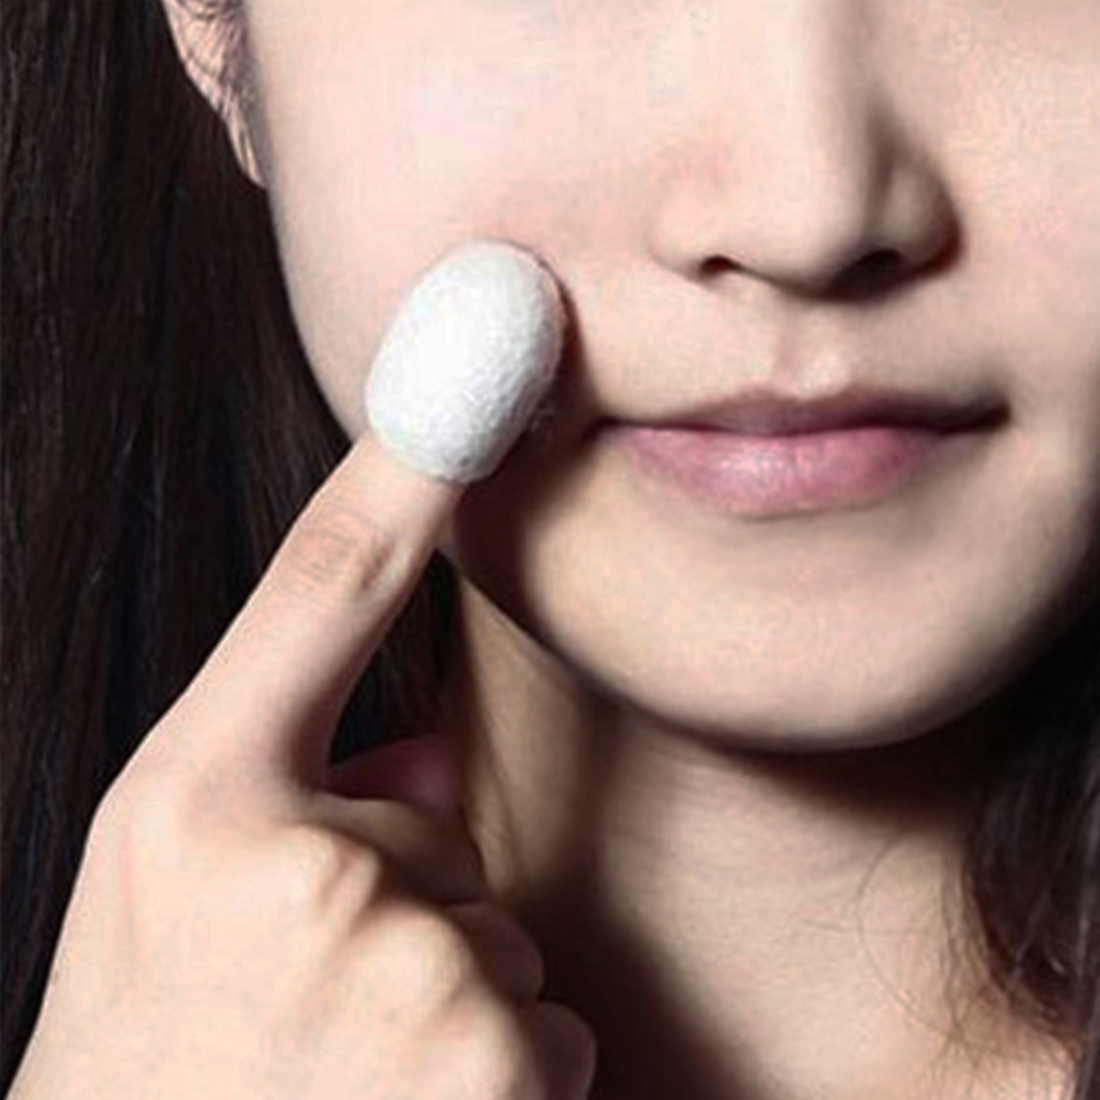 Blackhead Acne Remover 30PCS Natural Silk Cocoons Facial Skin Care Organic Silkworm Balls Purifying Whitening Exfoliating Scrub